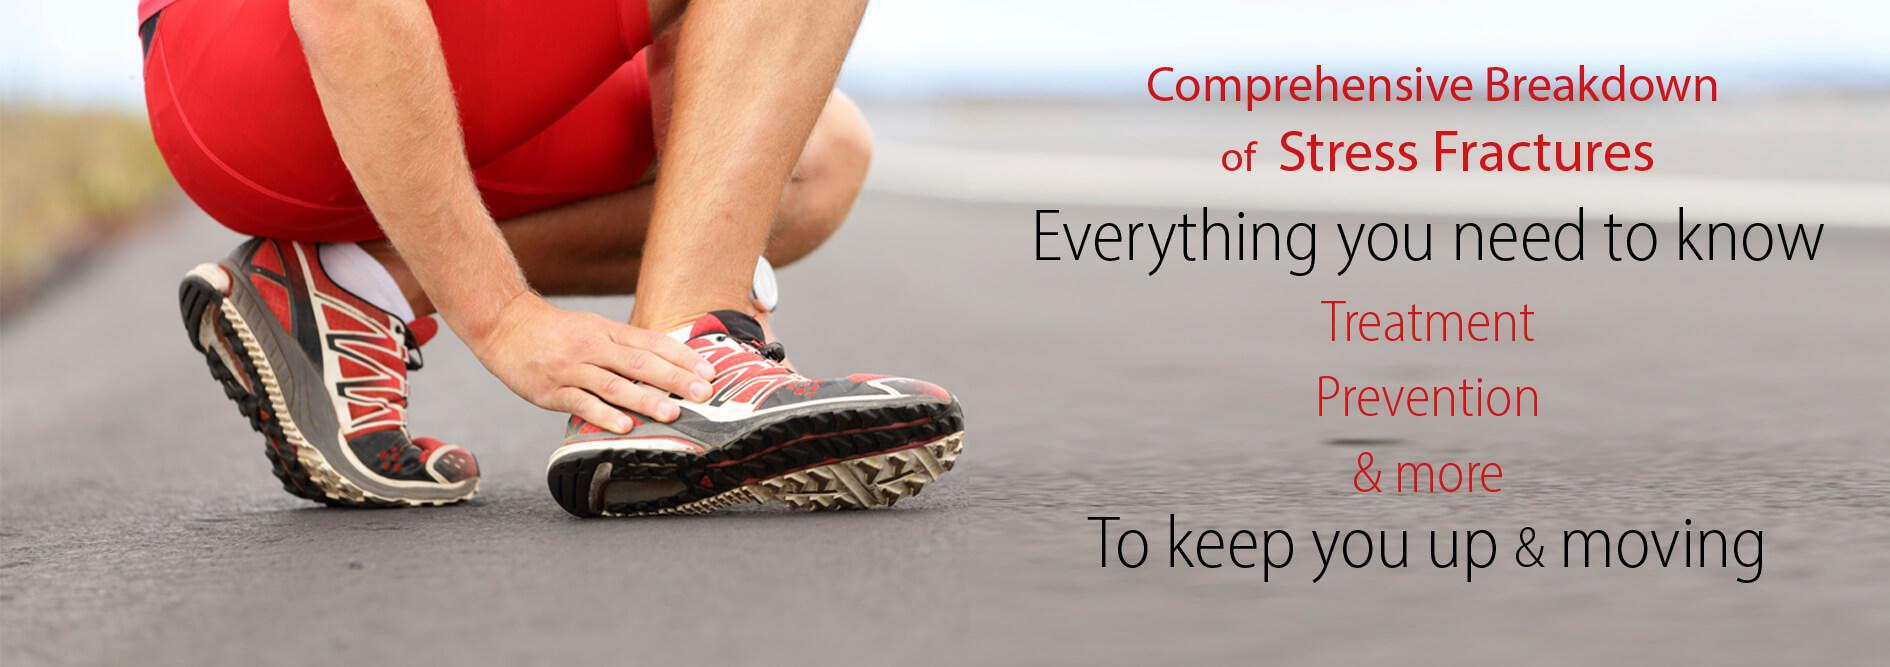 Runners-Guide-Stress-Fracture-Main